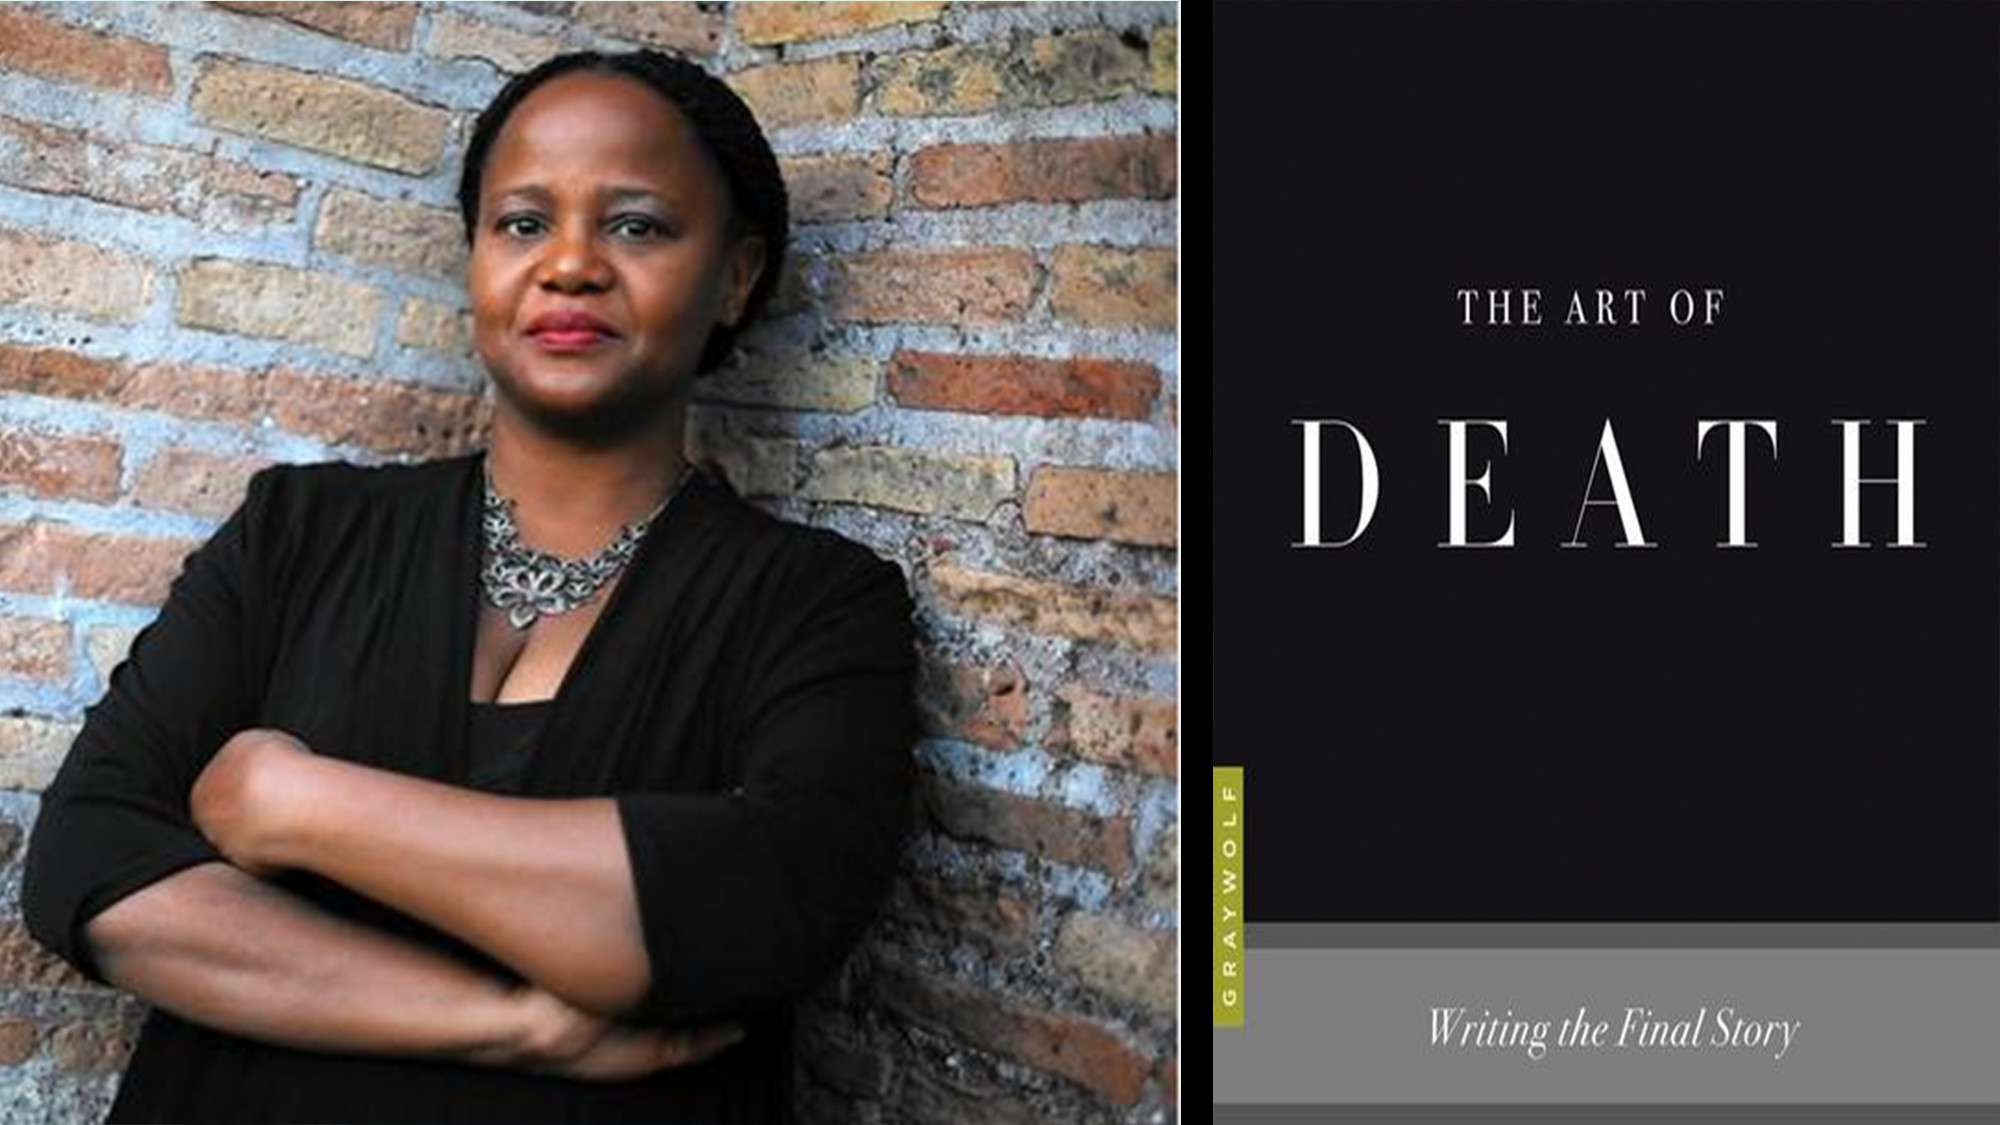 an analysis of the series of events in krik krak by edwidge danticat This special event was recorded live as part of the thalia book club series at peter norton symphony space in new york city if you haven't heard it already, download edwidge danticat's brother, i'm dying (unabridged) .